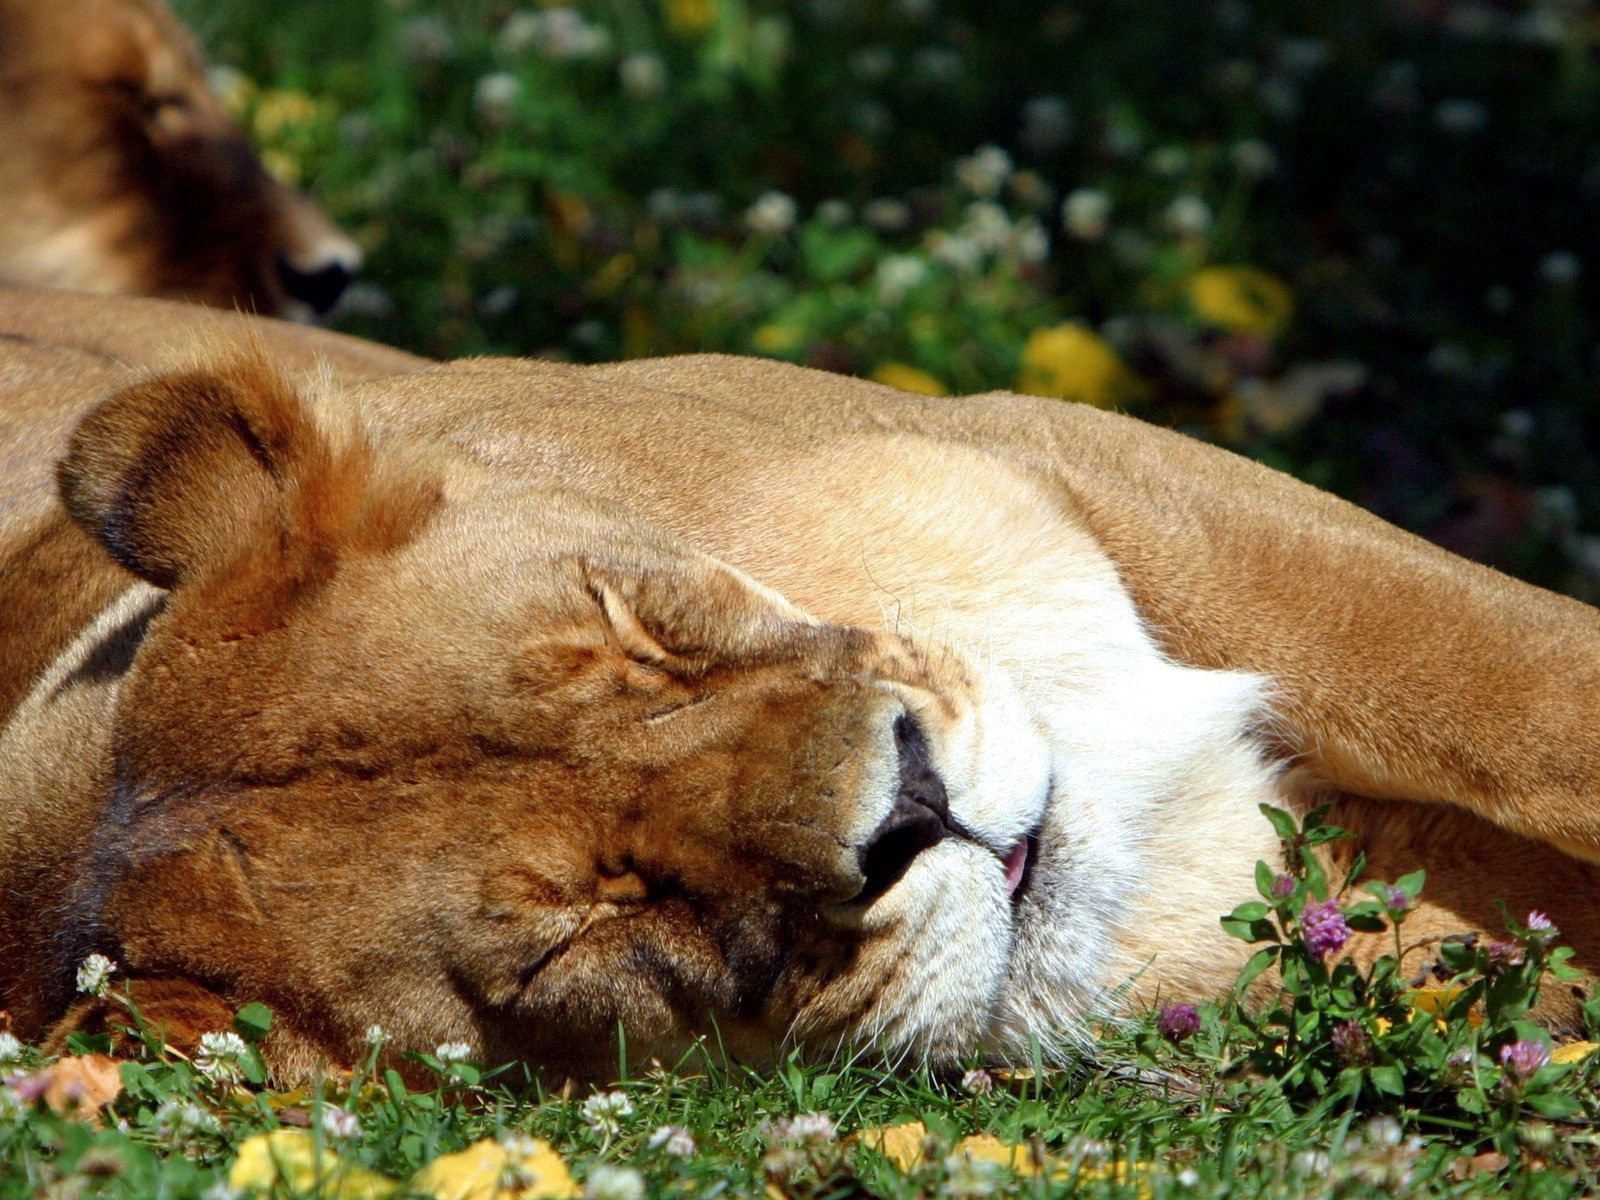 111528 download wallpaper Animals, Lion, Muzzle, Sleep, Dream, Sleeping, Asleep, Big Cat screensavers and pictures for free